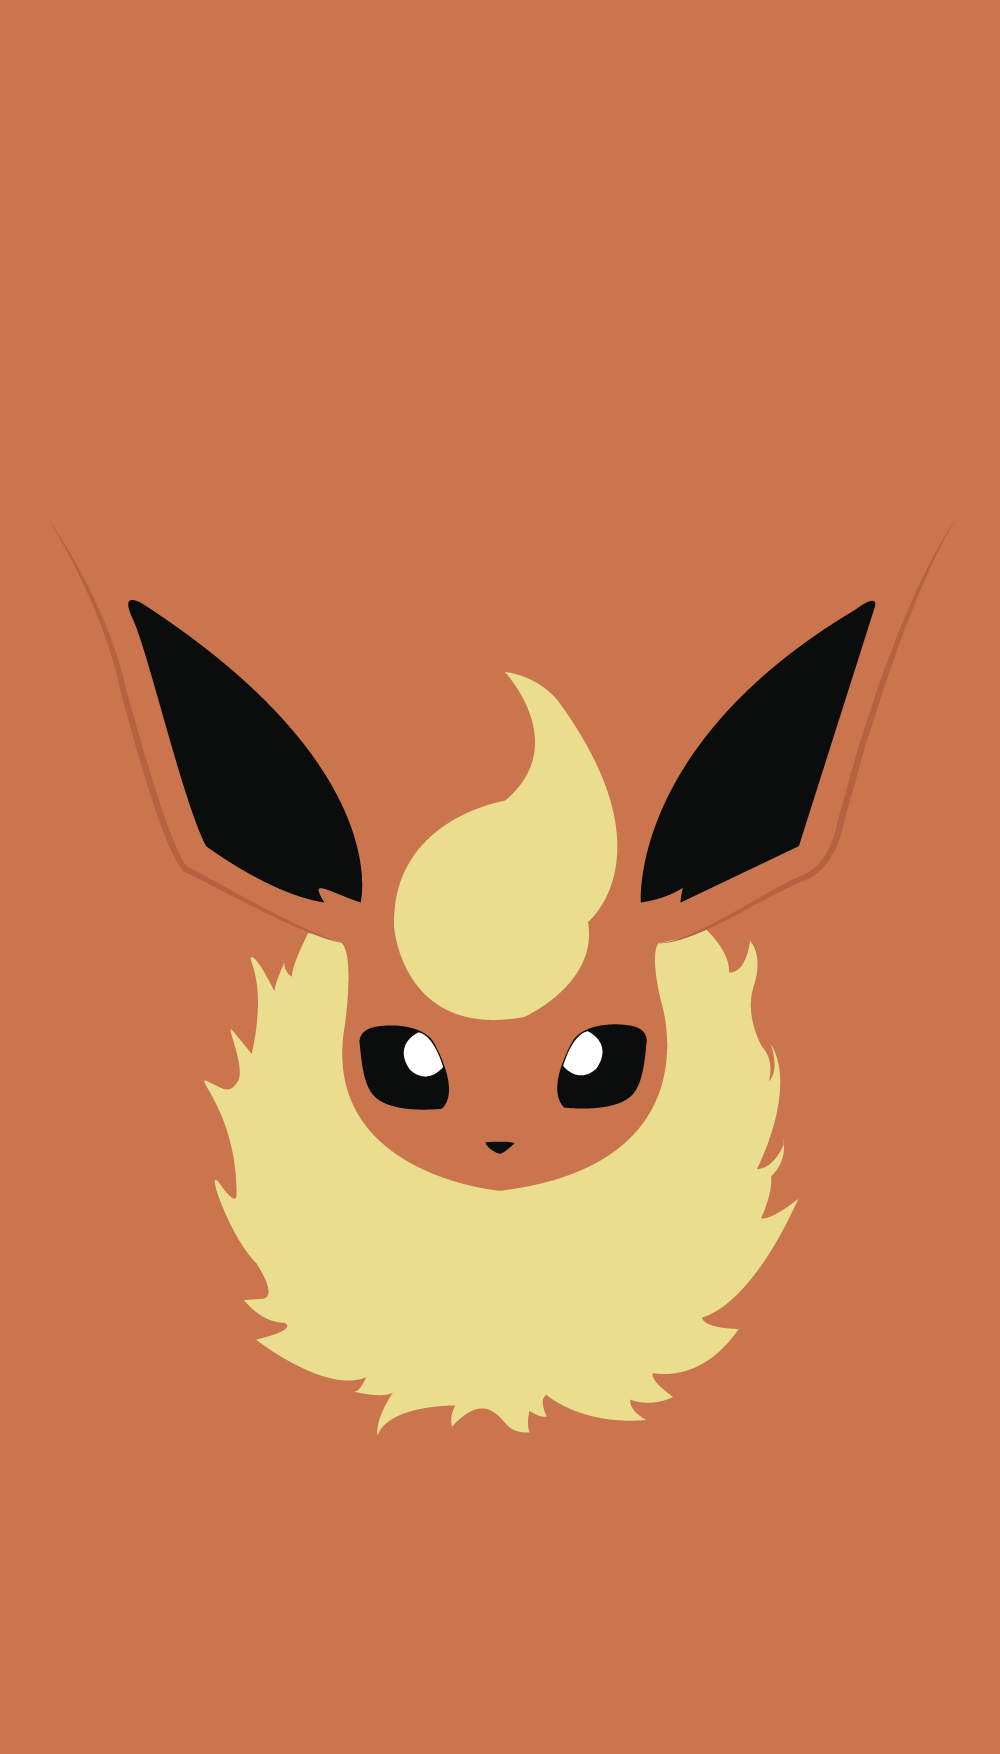 pokemon wallpaper flareon | background | pinterest | ポケモン